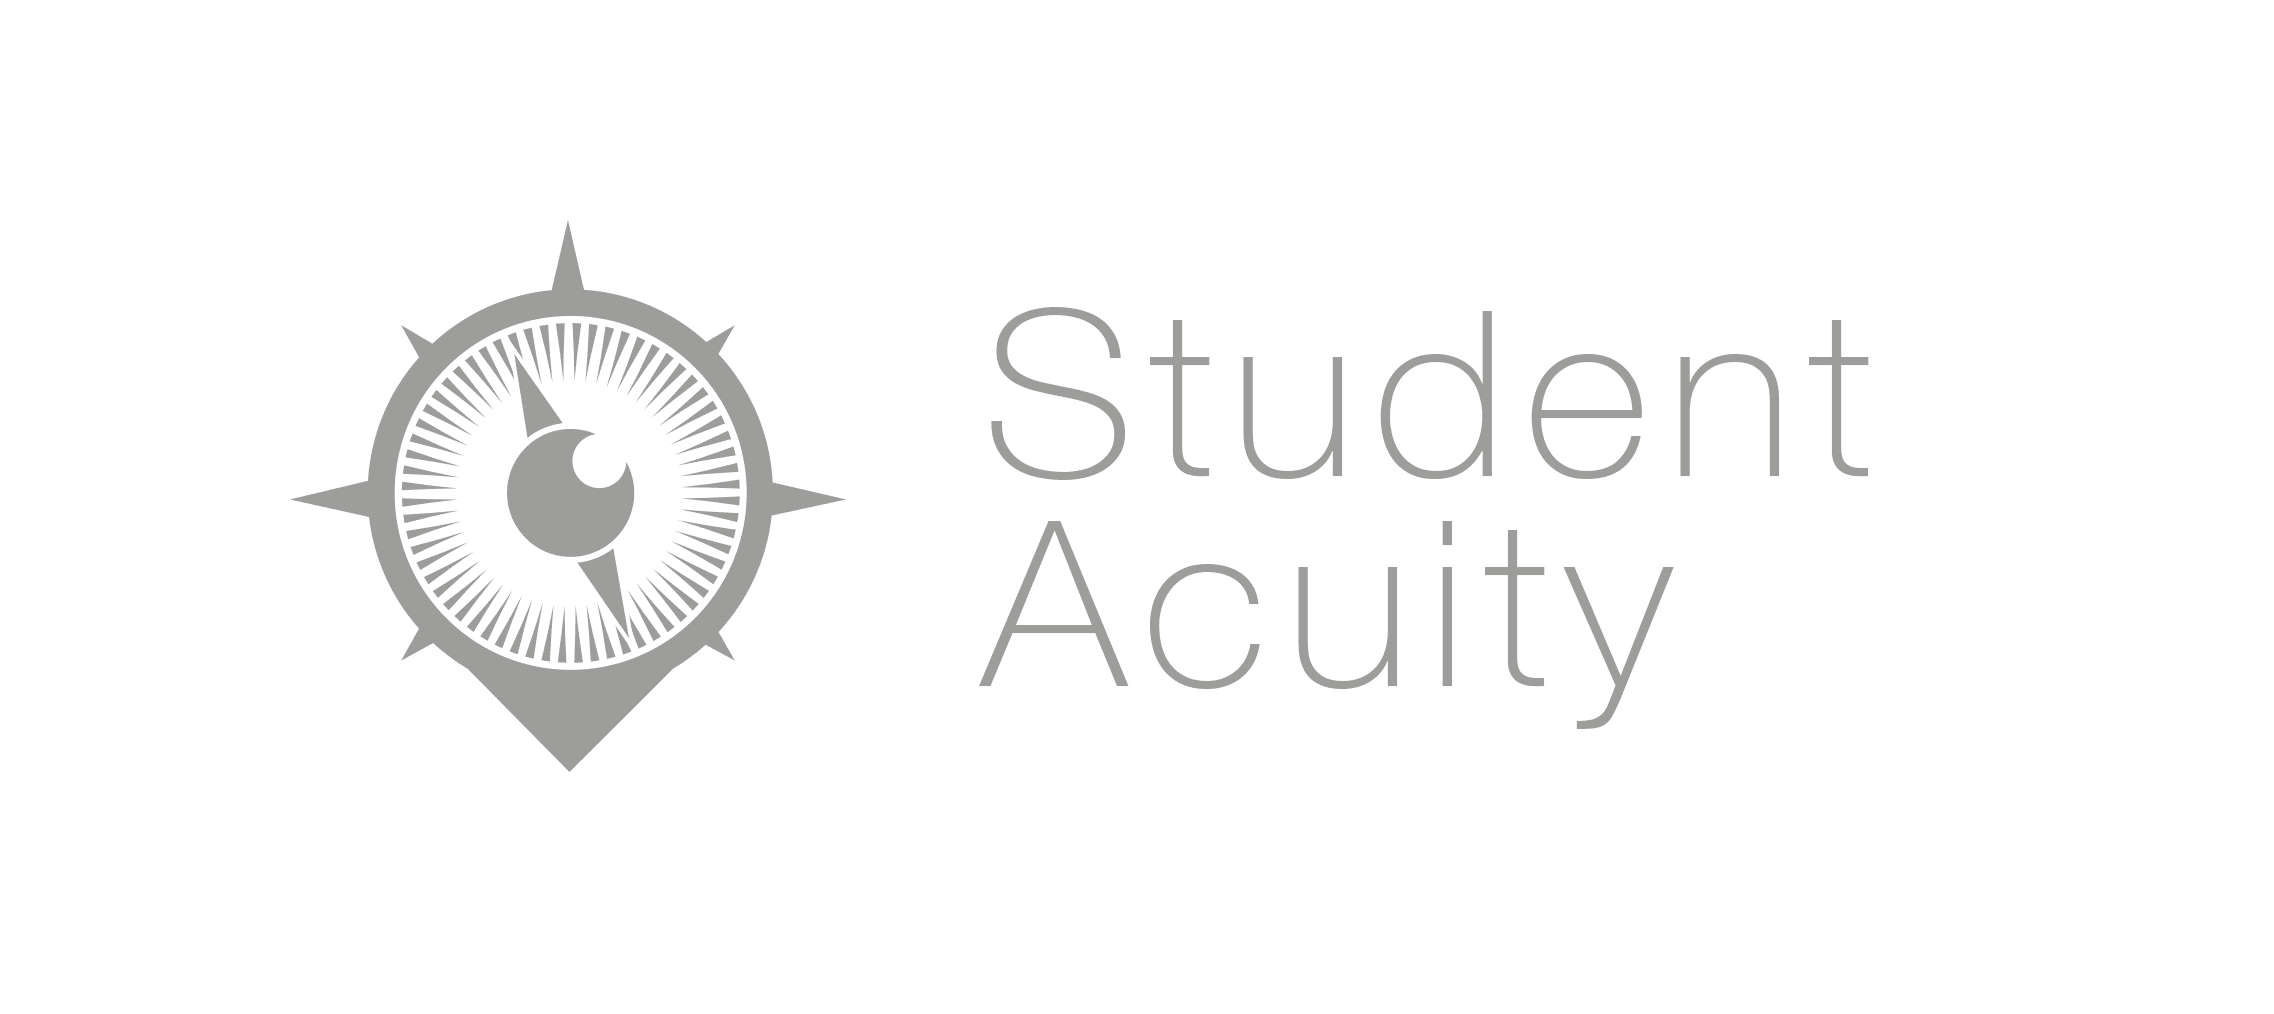 Student Acuity 5